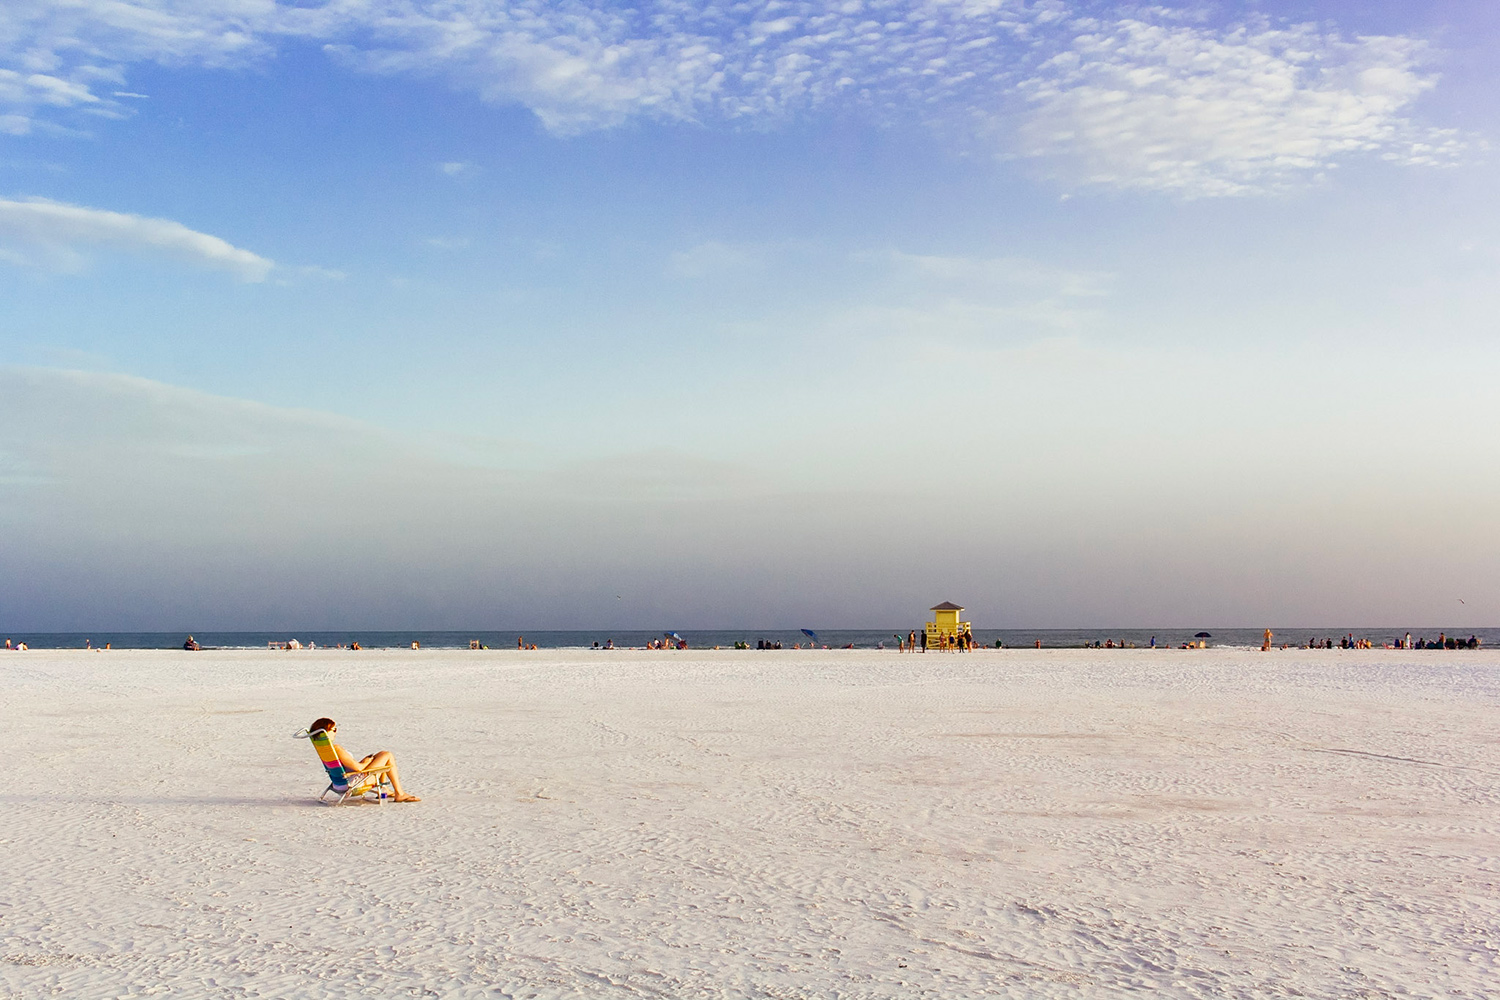 aspect ratios in photography - empty beach scene